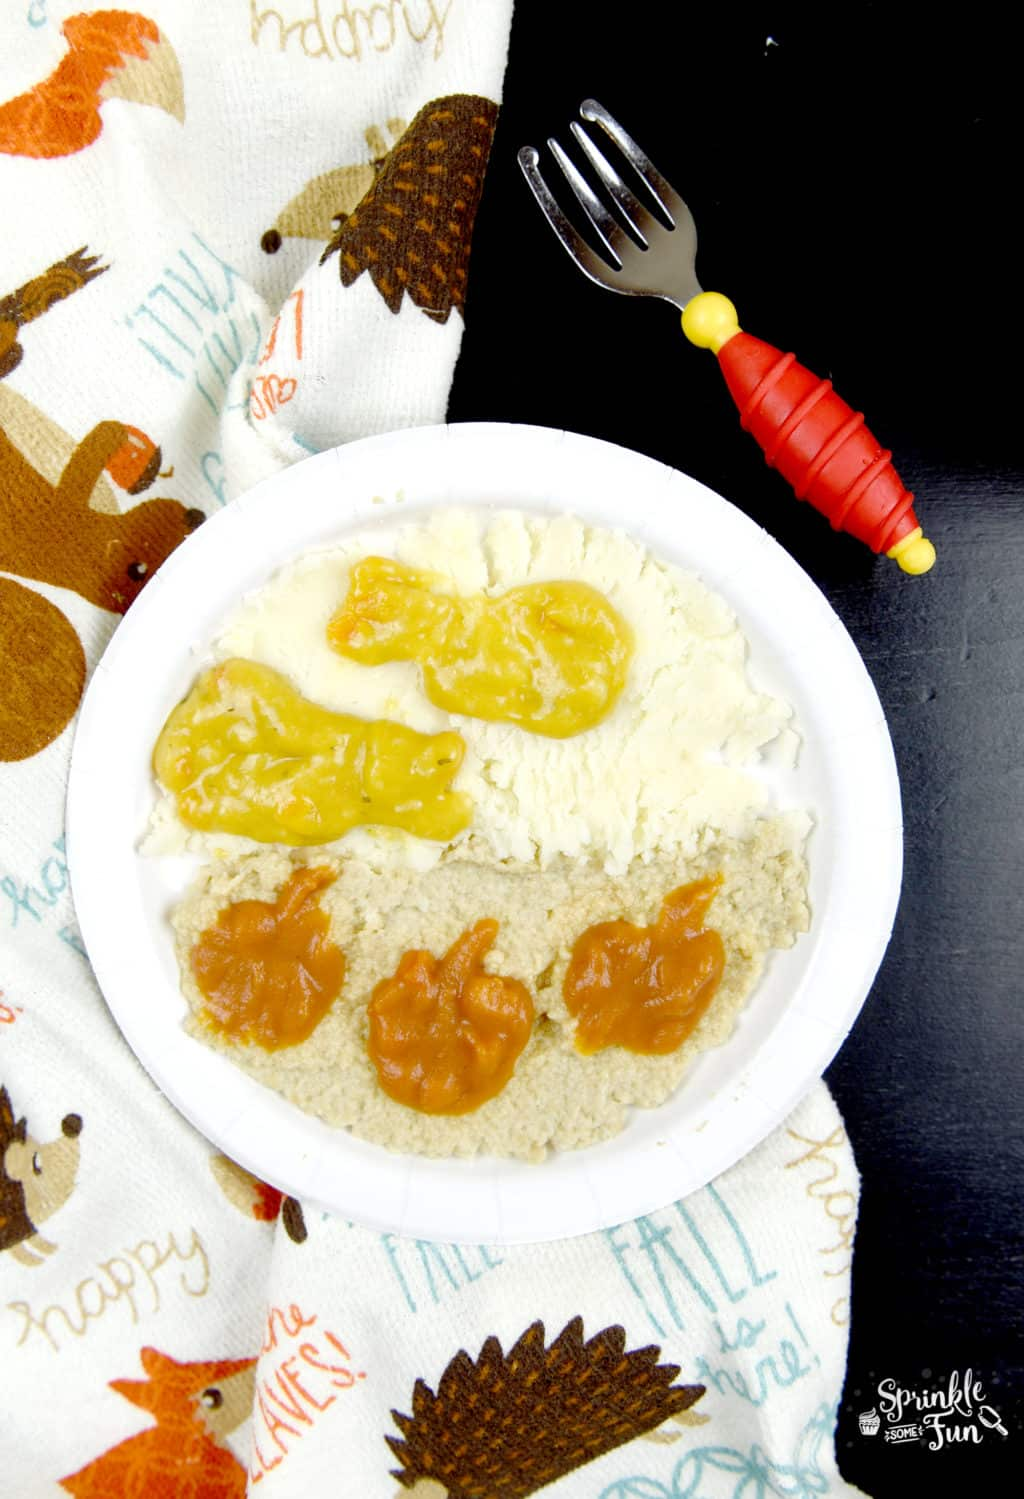 Babys first turkey dinner baby food recipes sprinkle some fun forumfinder Choice Image